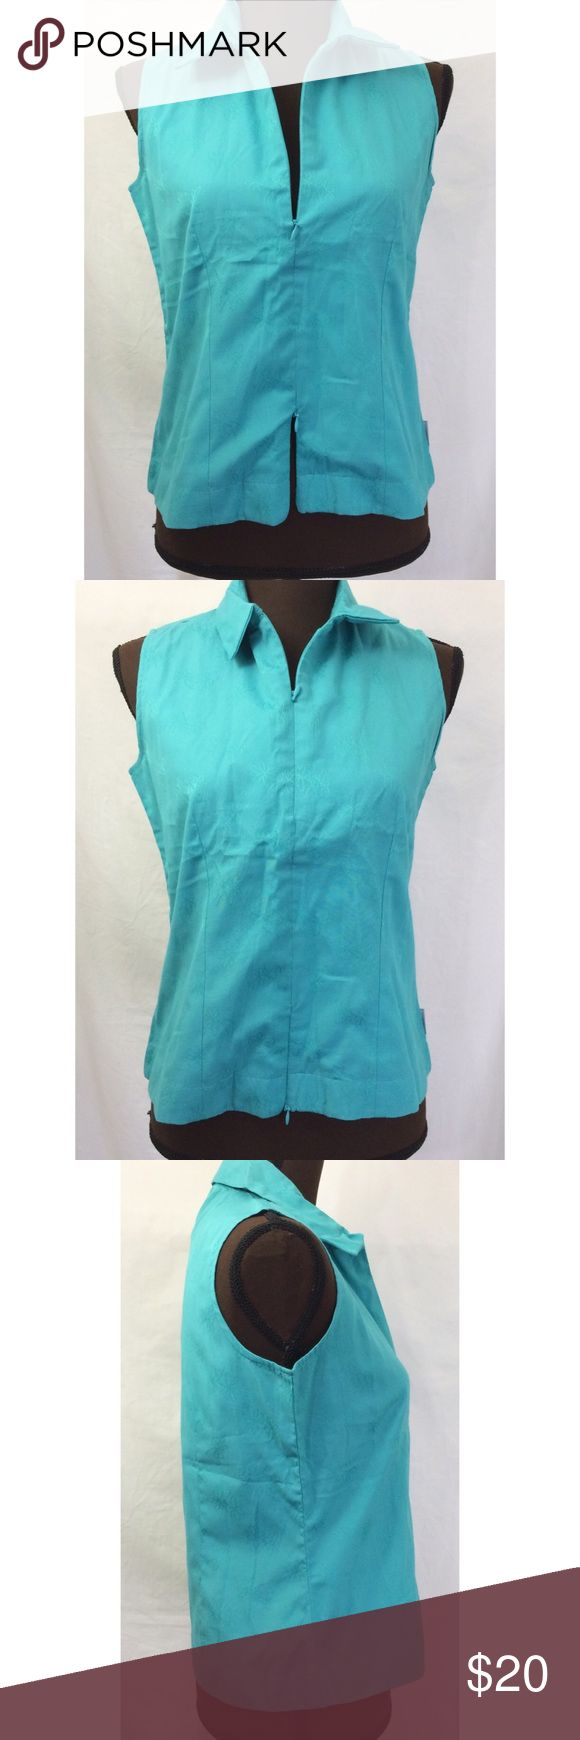 Women's Woolrich Sleeveless Top Women's Woolrich Sleeveless Top. Color Teal. Has floral pattern on it. Zips up at the top and the bottom separately. See pictures. Armpit to armpit 18 inches. Length 22 inches. Size Small. Woolrich Tops